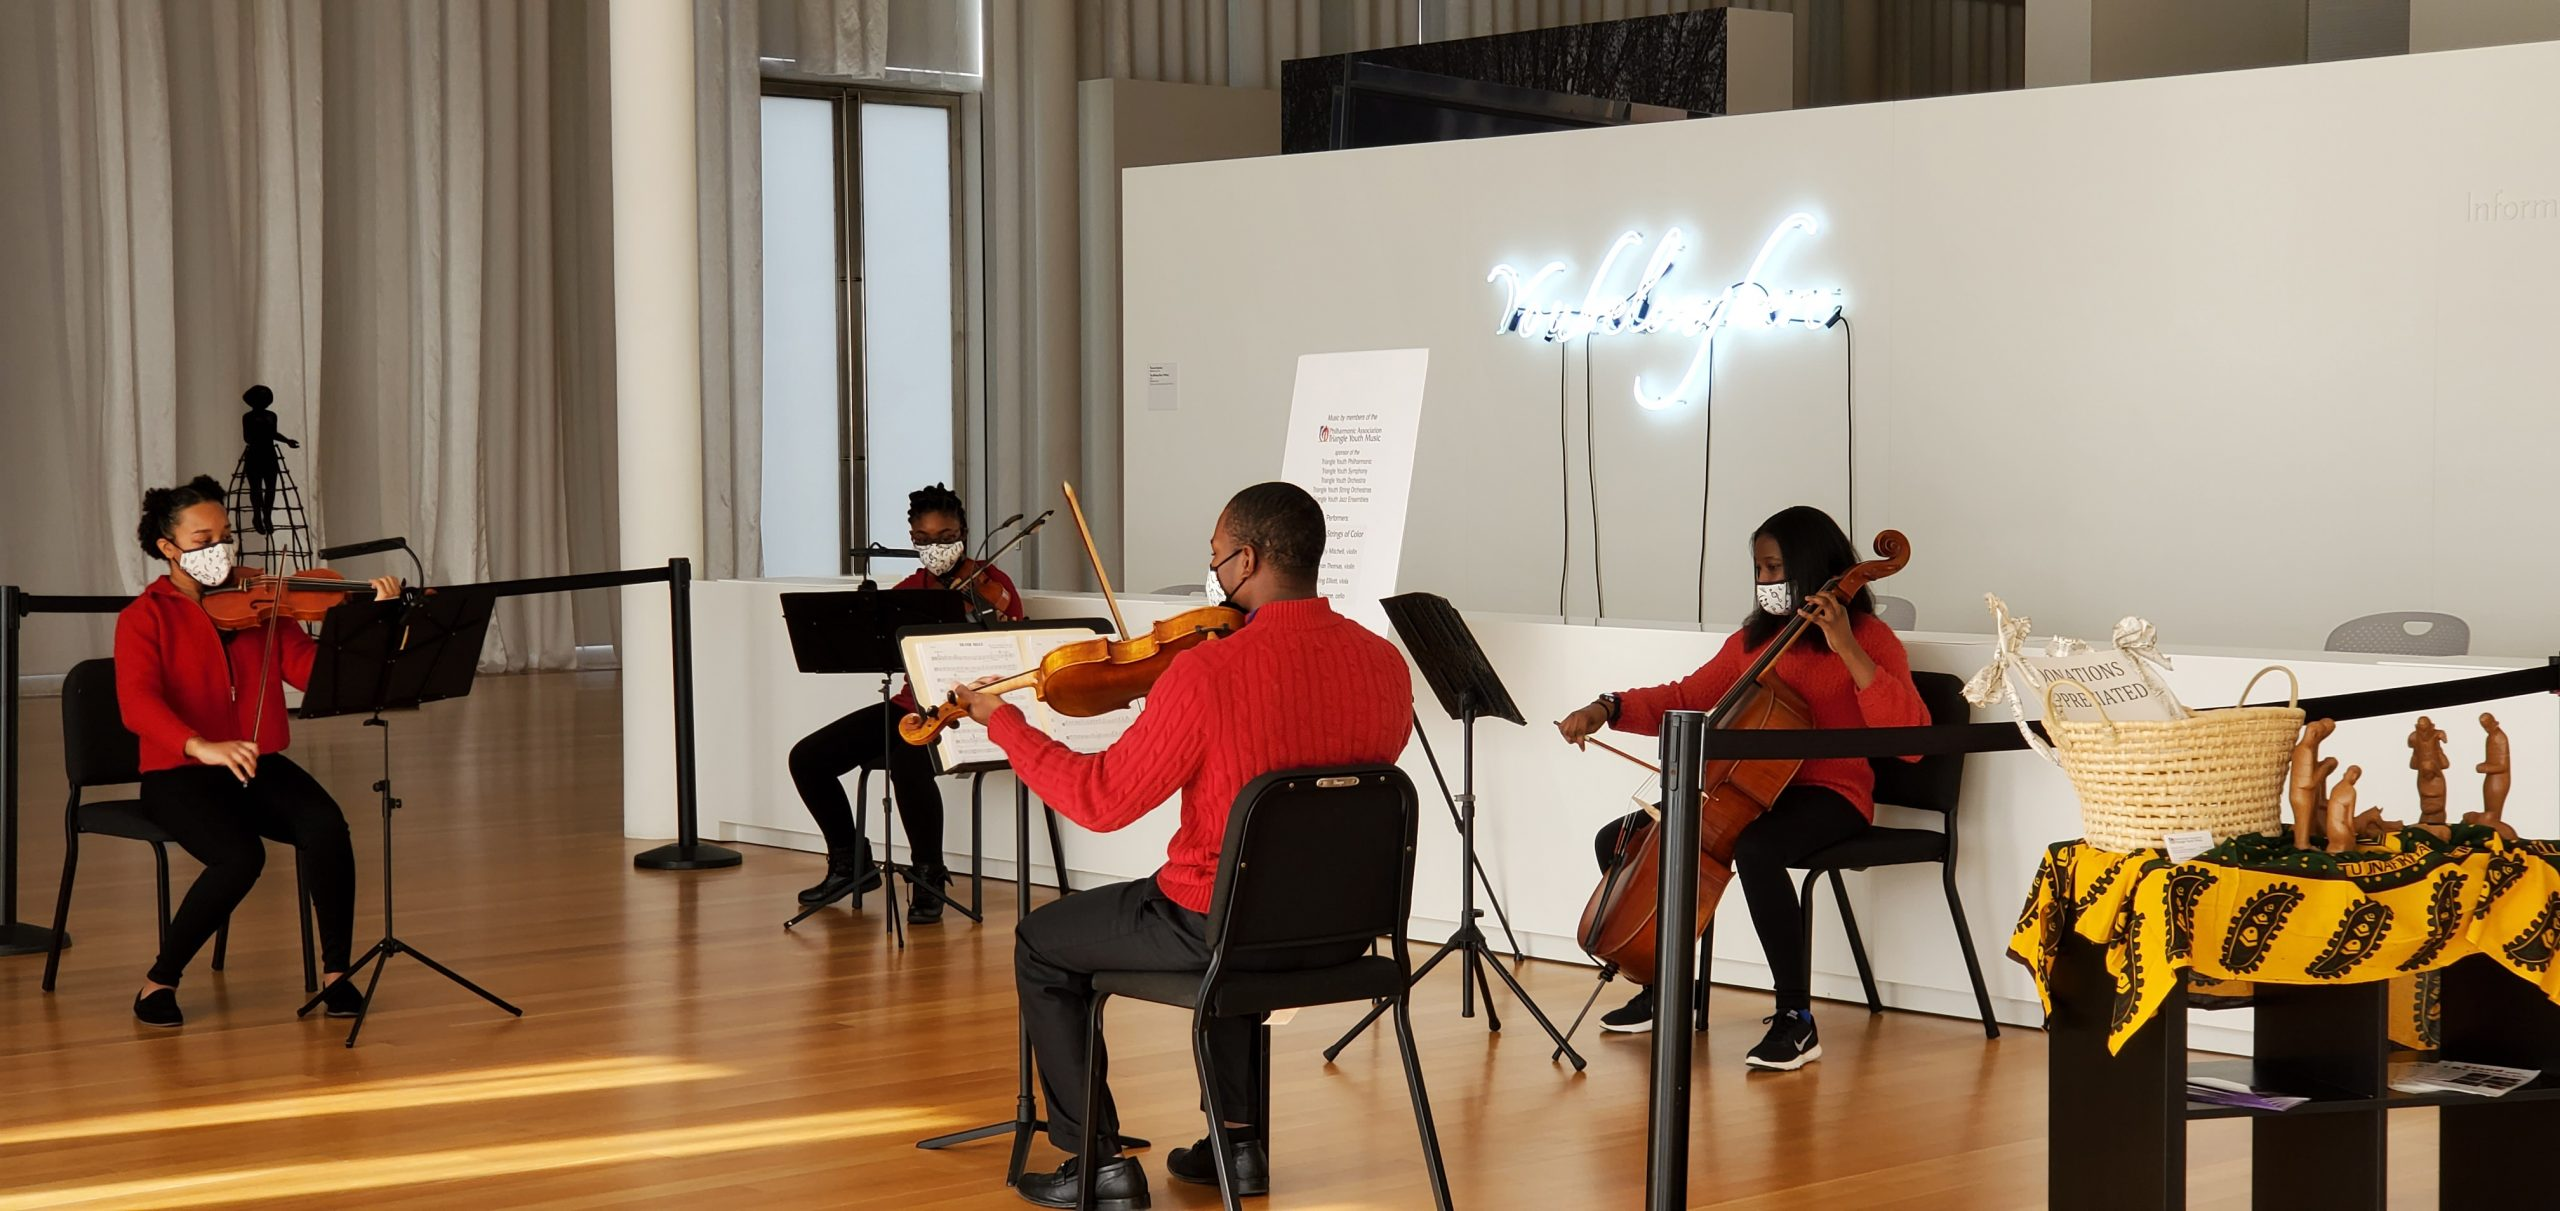 image of United Strings of Color performing at the NC Museum of Art